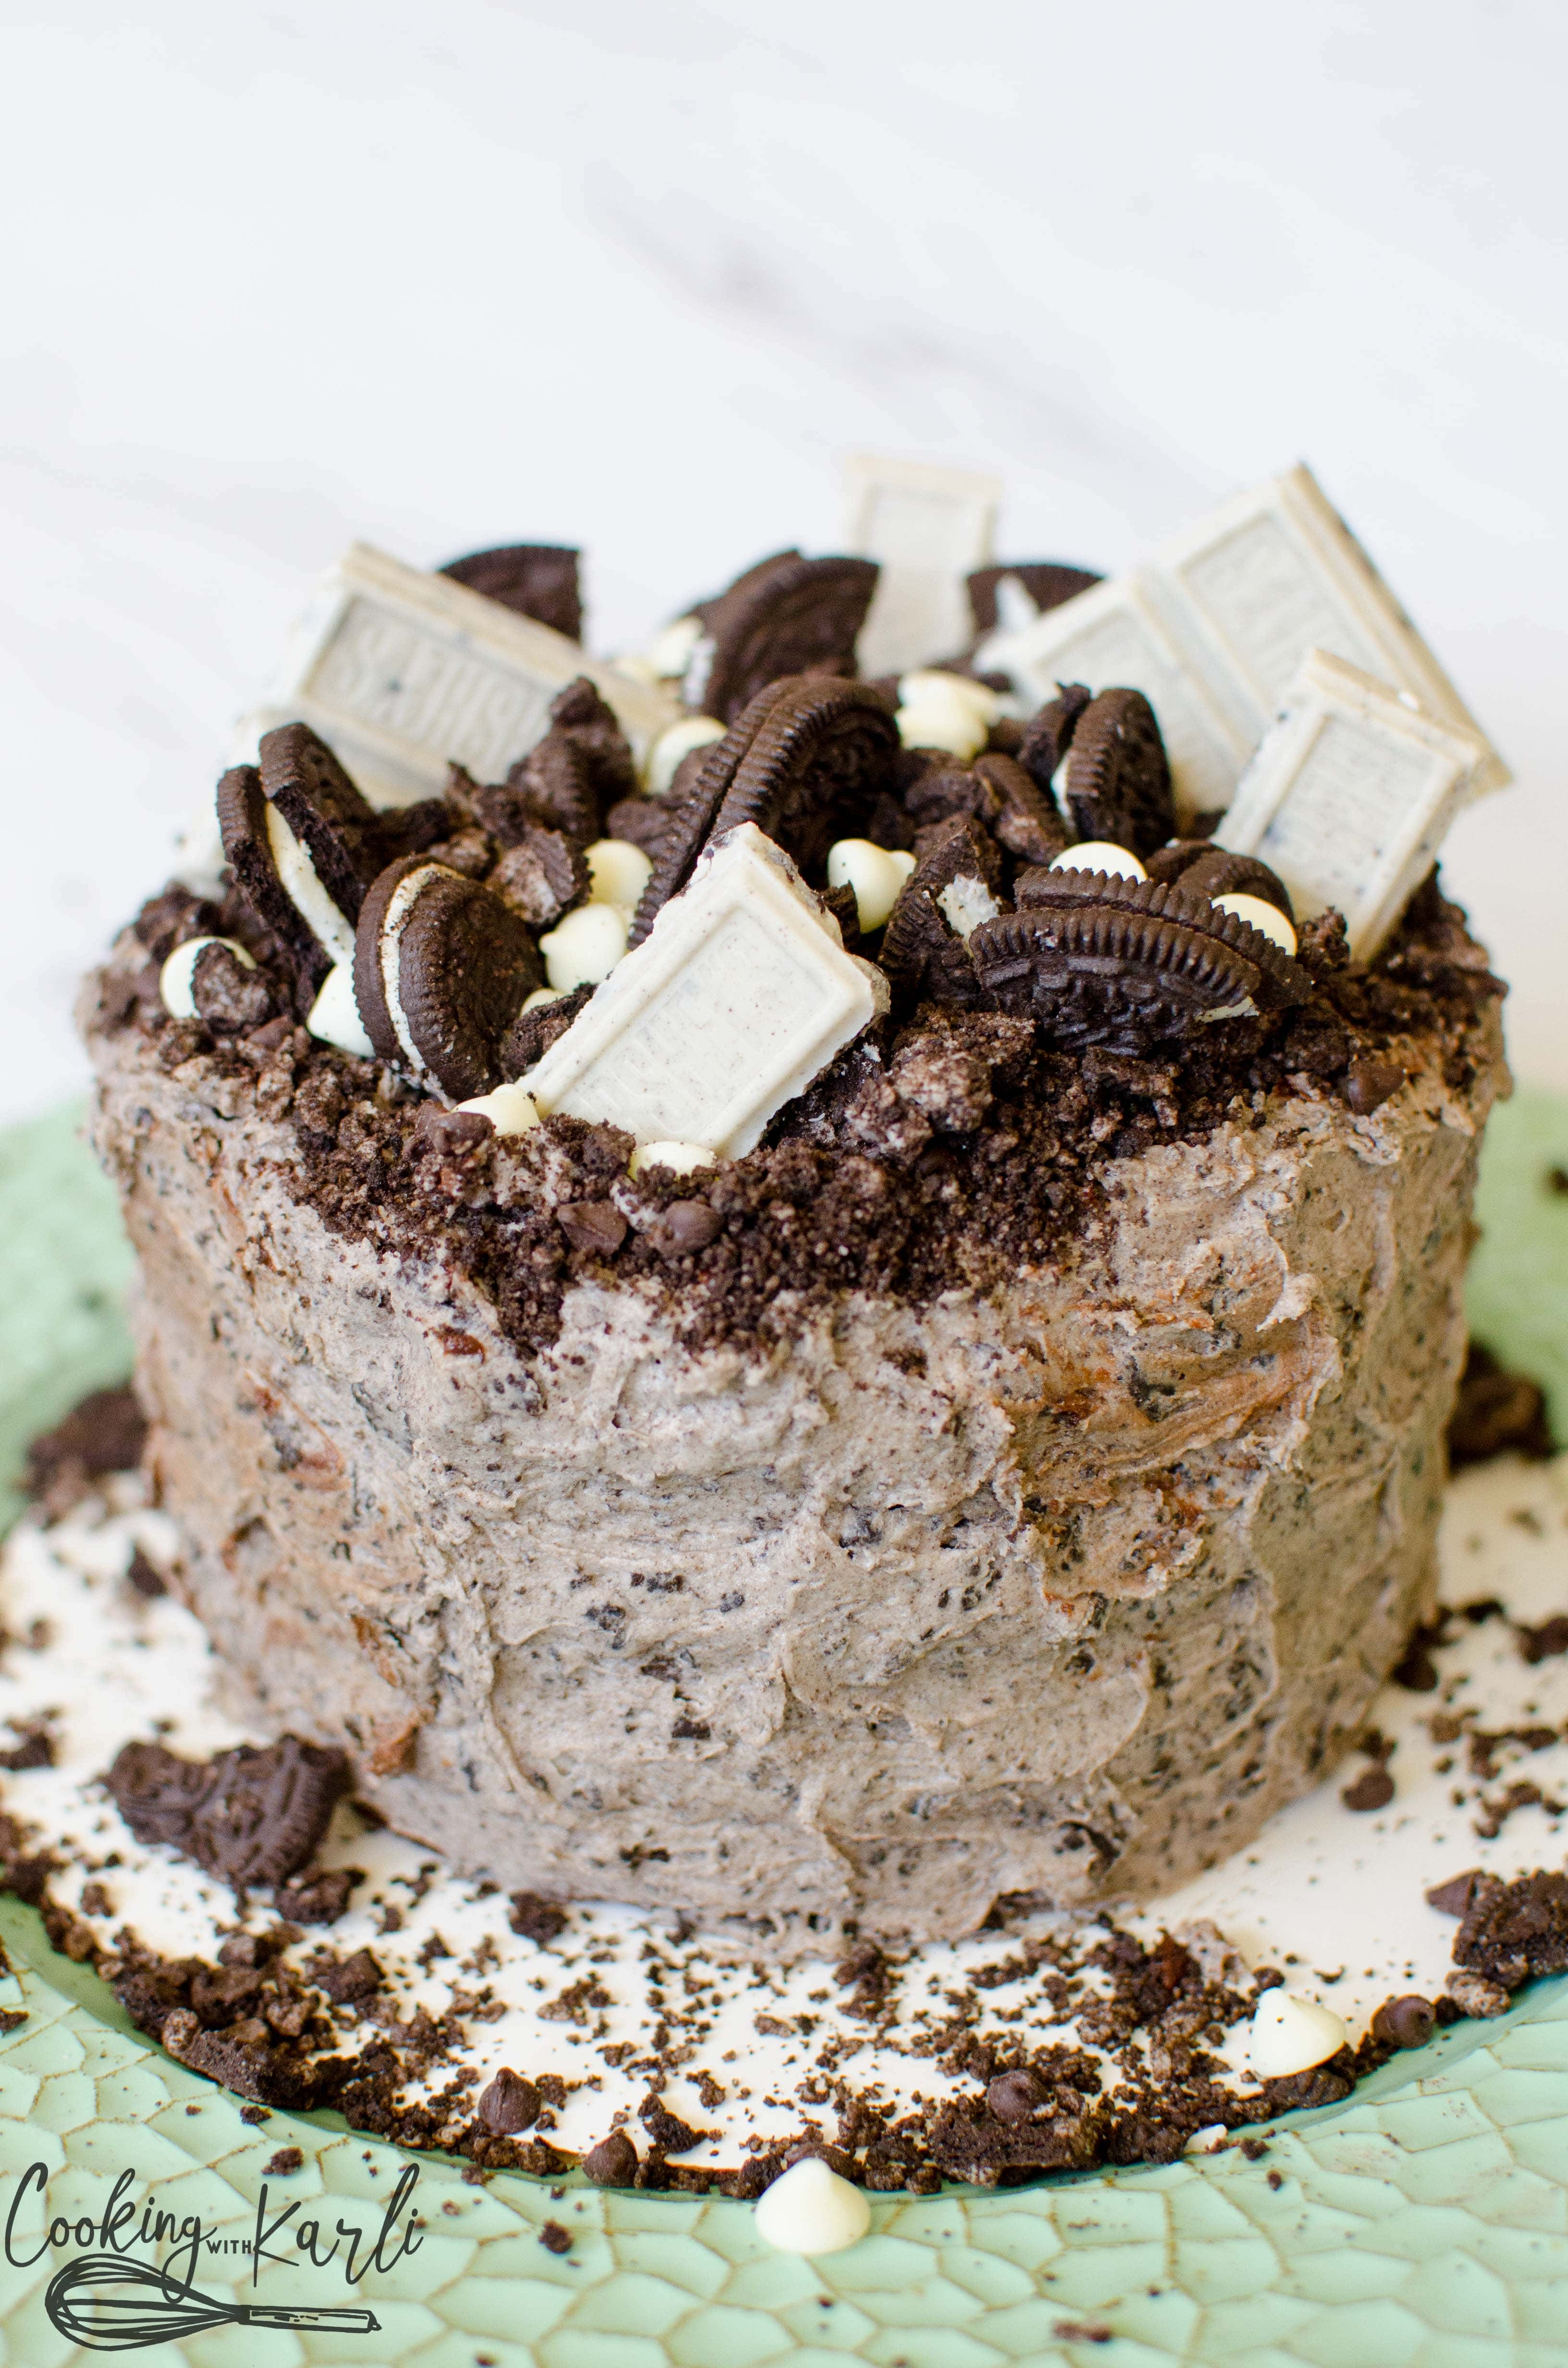 Cookies 'n Cream Cake is full of Oreo's, chocolate cake and chocolate chips.